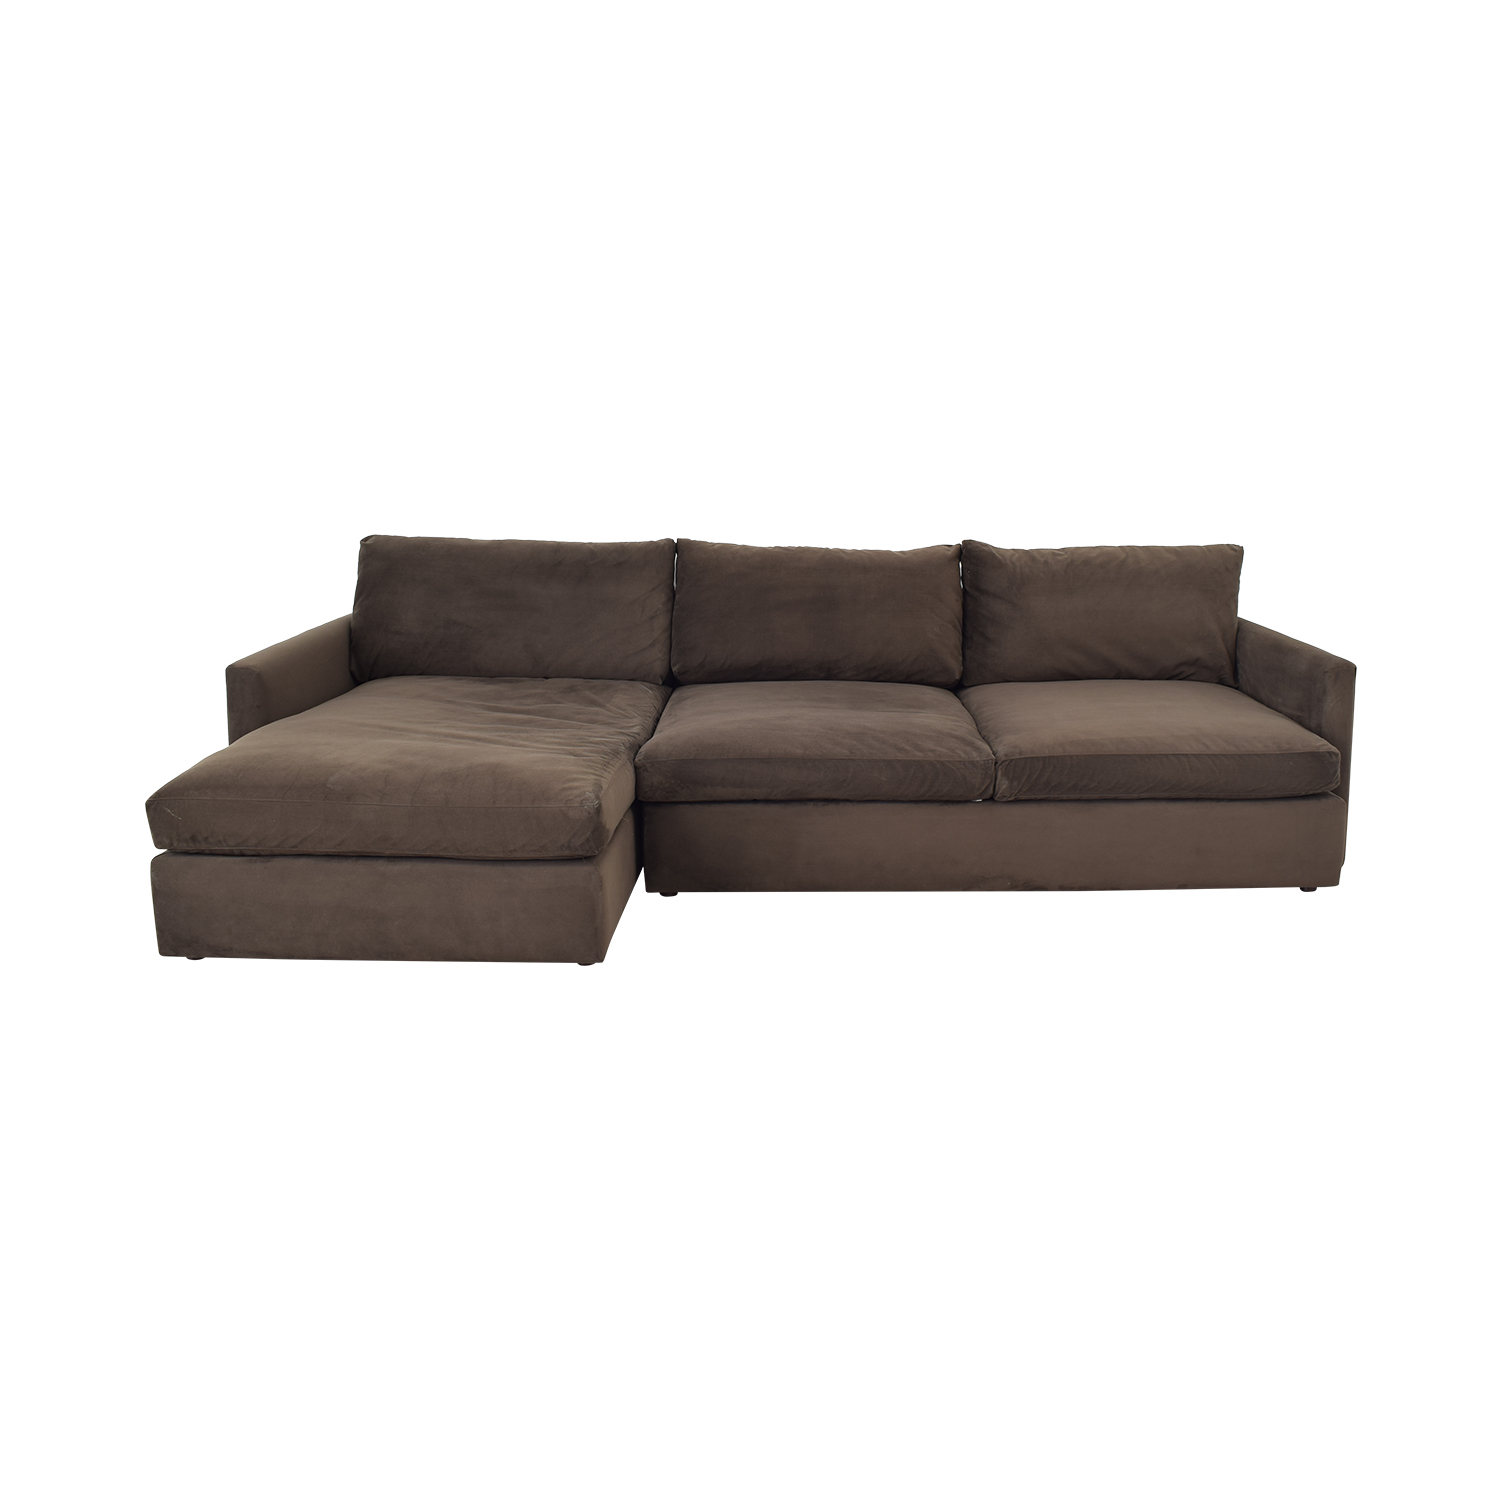 Crate & Barrel Crate & Barrel Lounge II 2-Piece Sectional Sofa discount